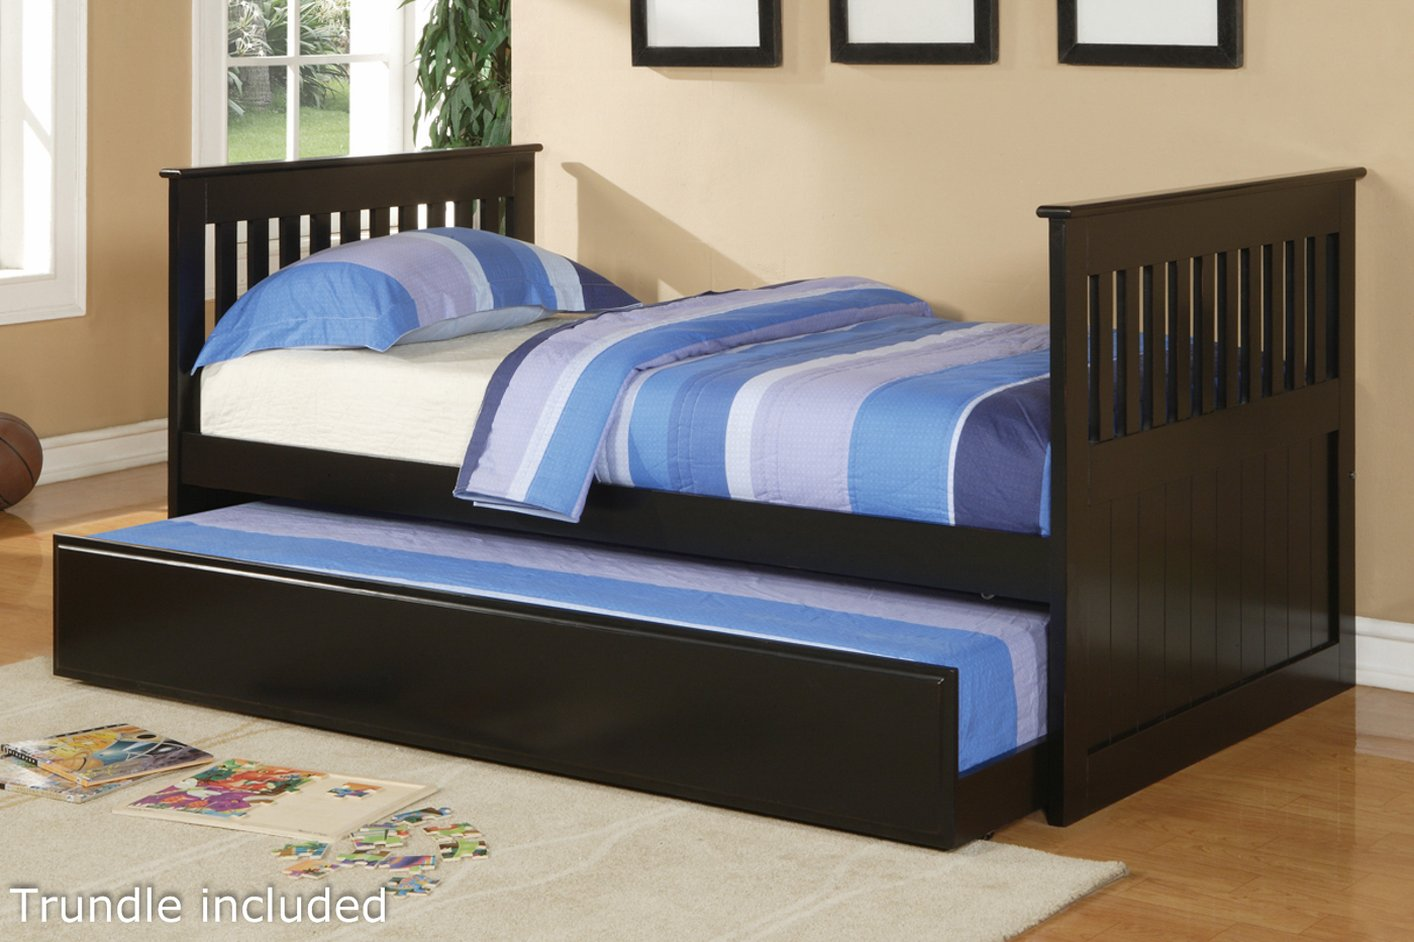 Black Wood Twin Size Bed Steal A Sofa Furniture Outlet Los Angeles Ca